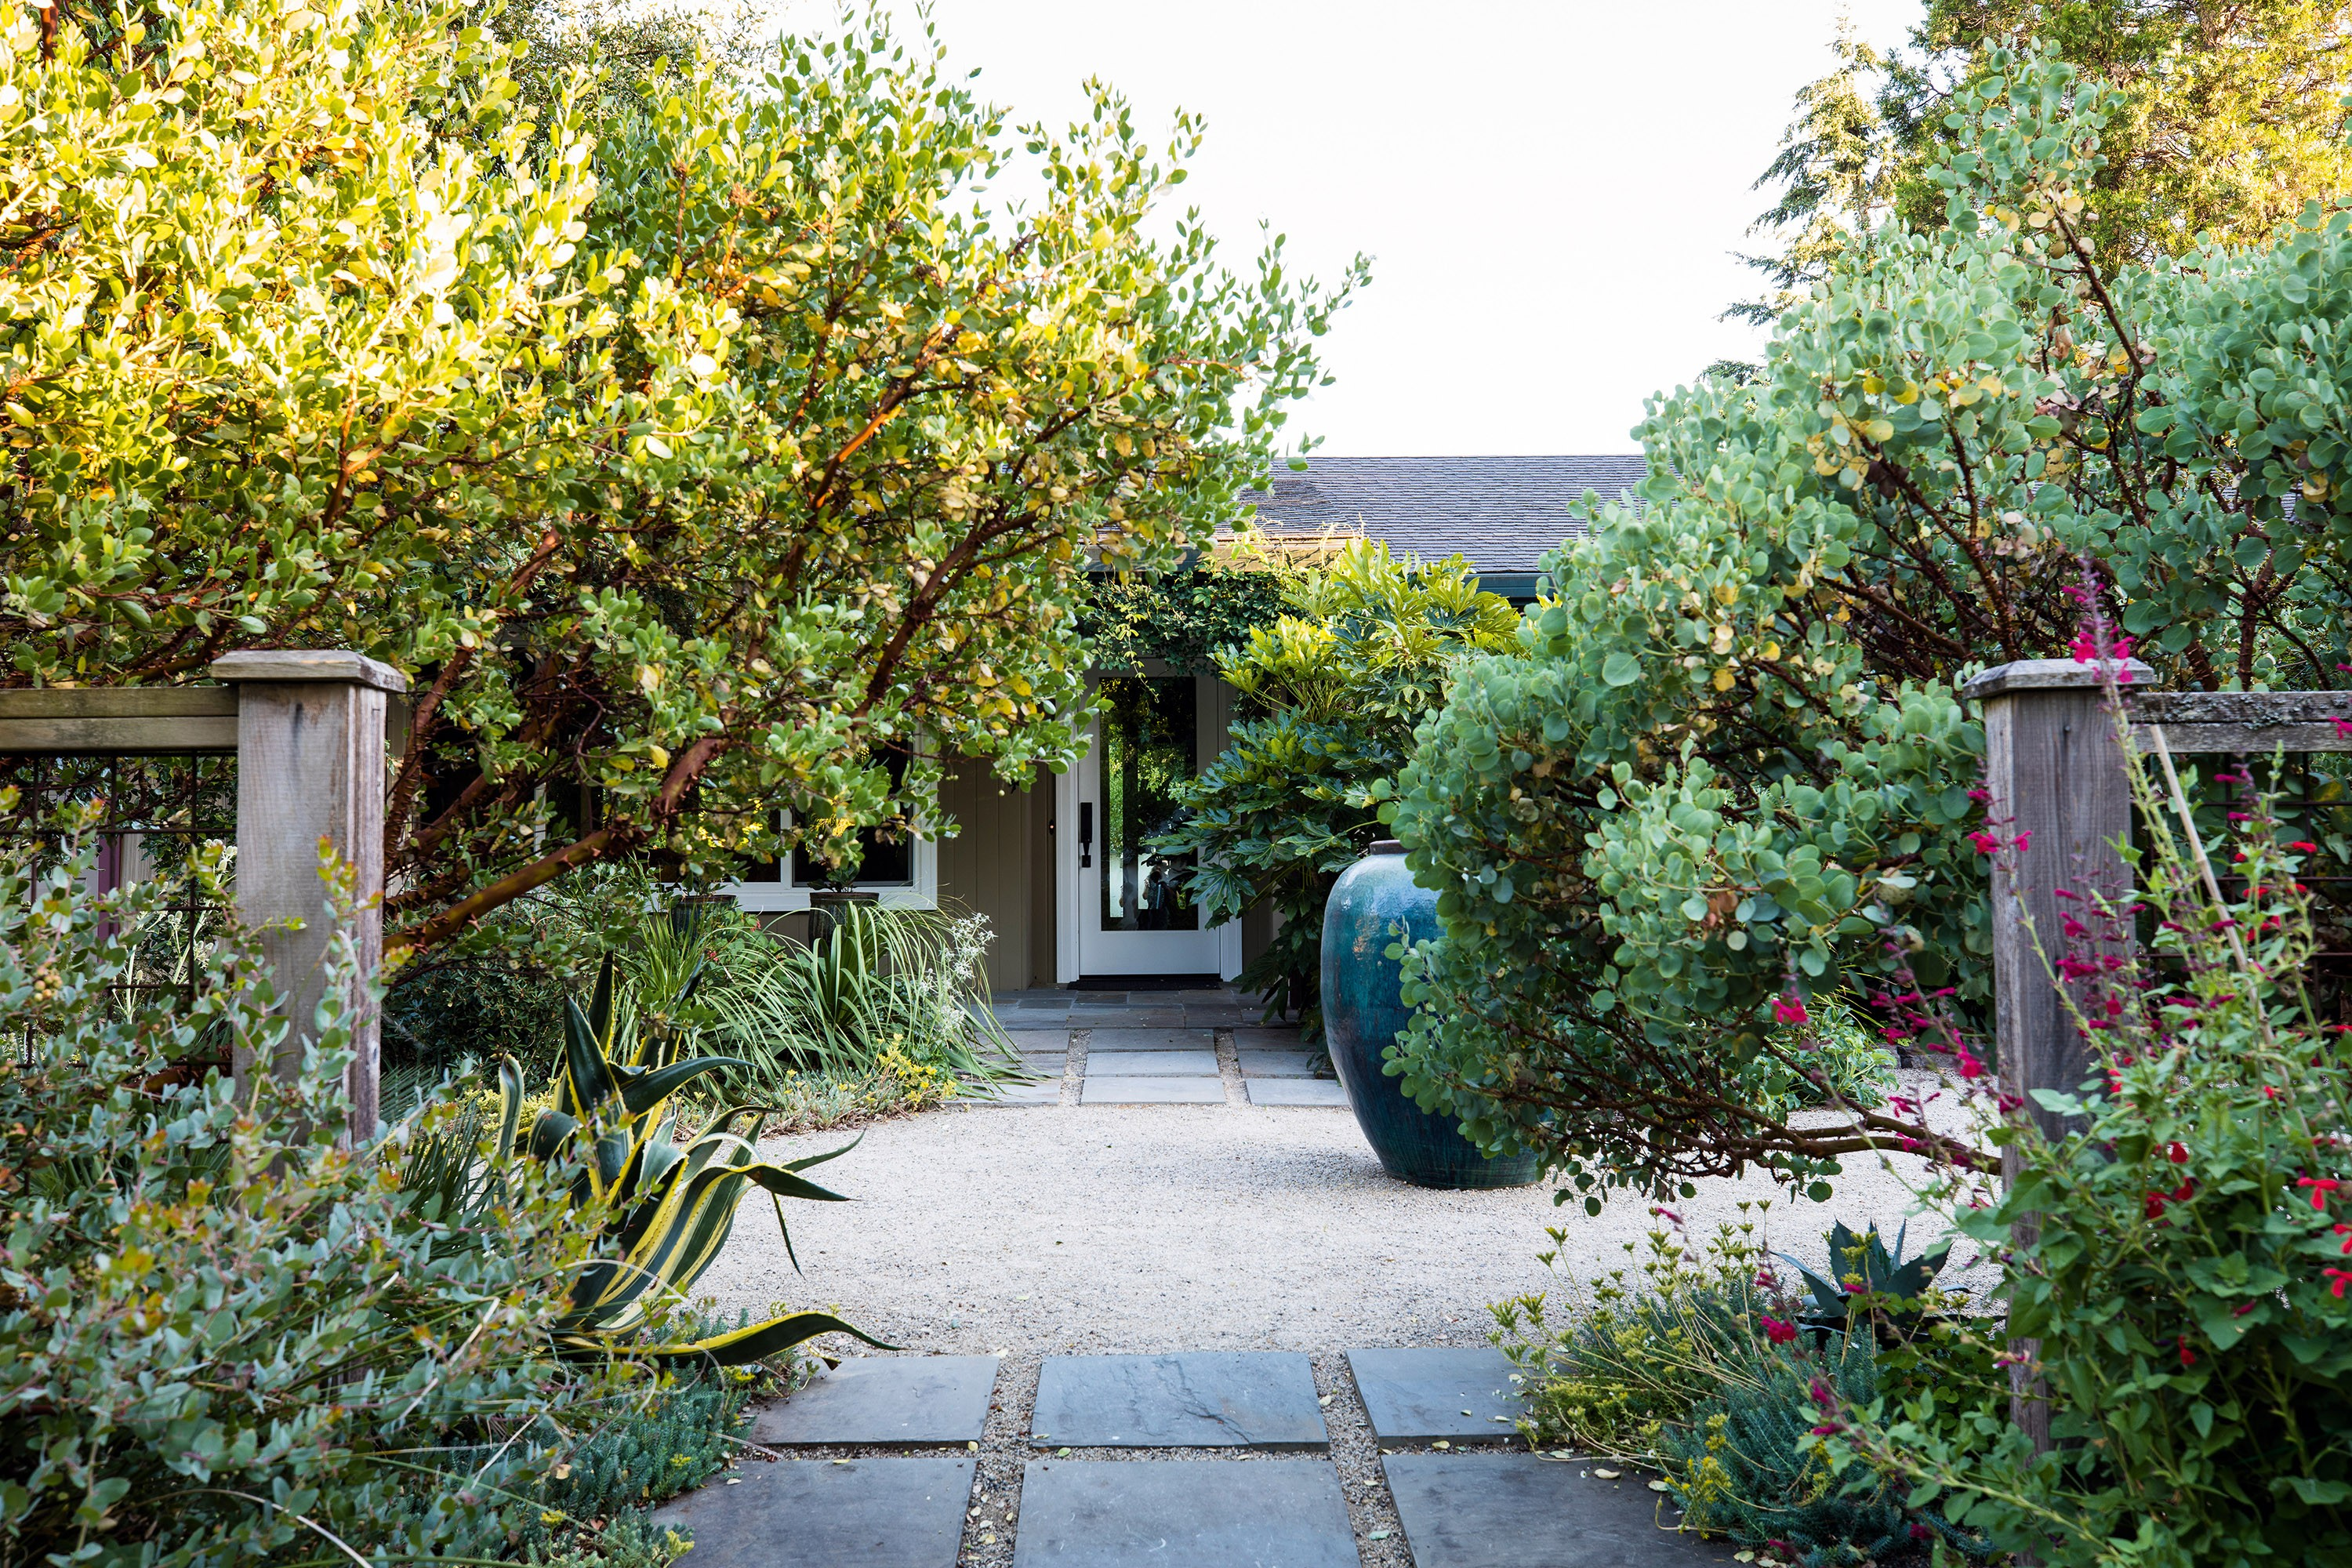 Sean Hogan's West Coast garden